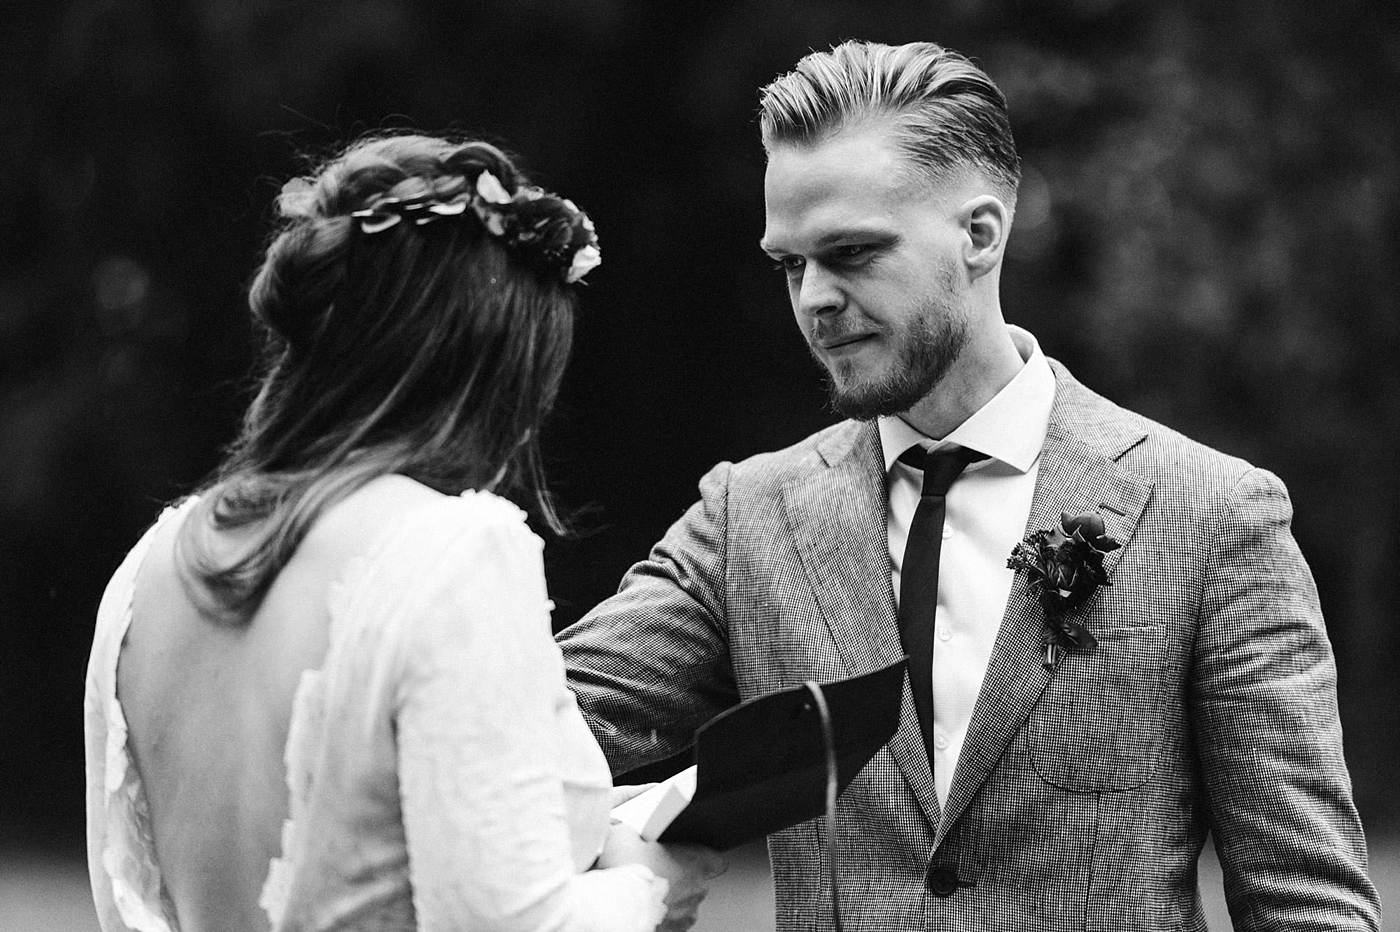 urban-elopement-wedding-113 Merve & Nils emotionales Elopement - Wedding Wesel & Schottlandurban elopement wedding 113 1